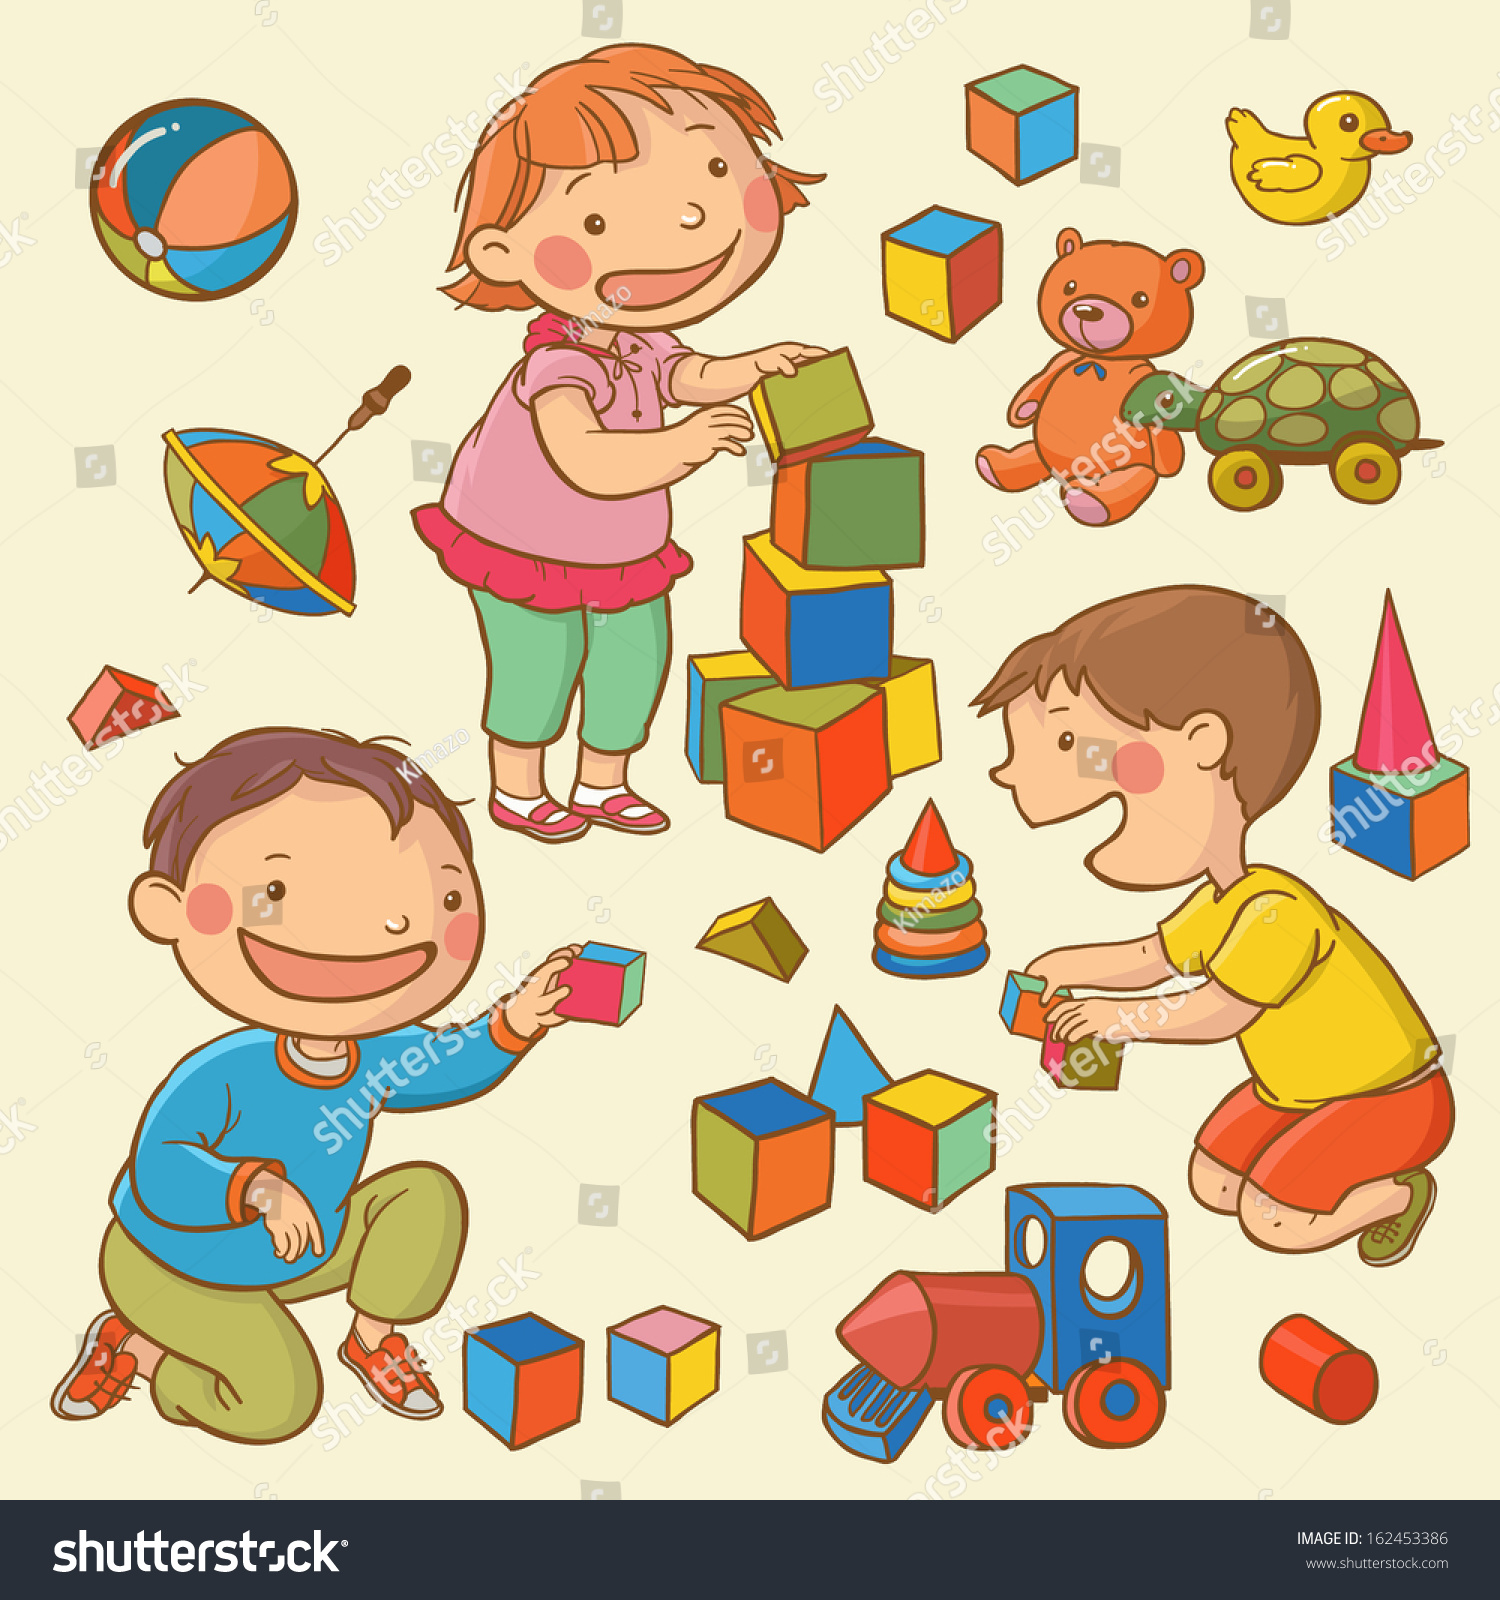 Illustration Kids Playing Toys Children Illustration Stock Vector